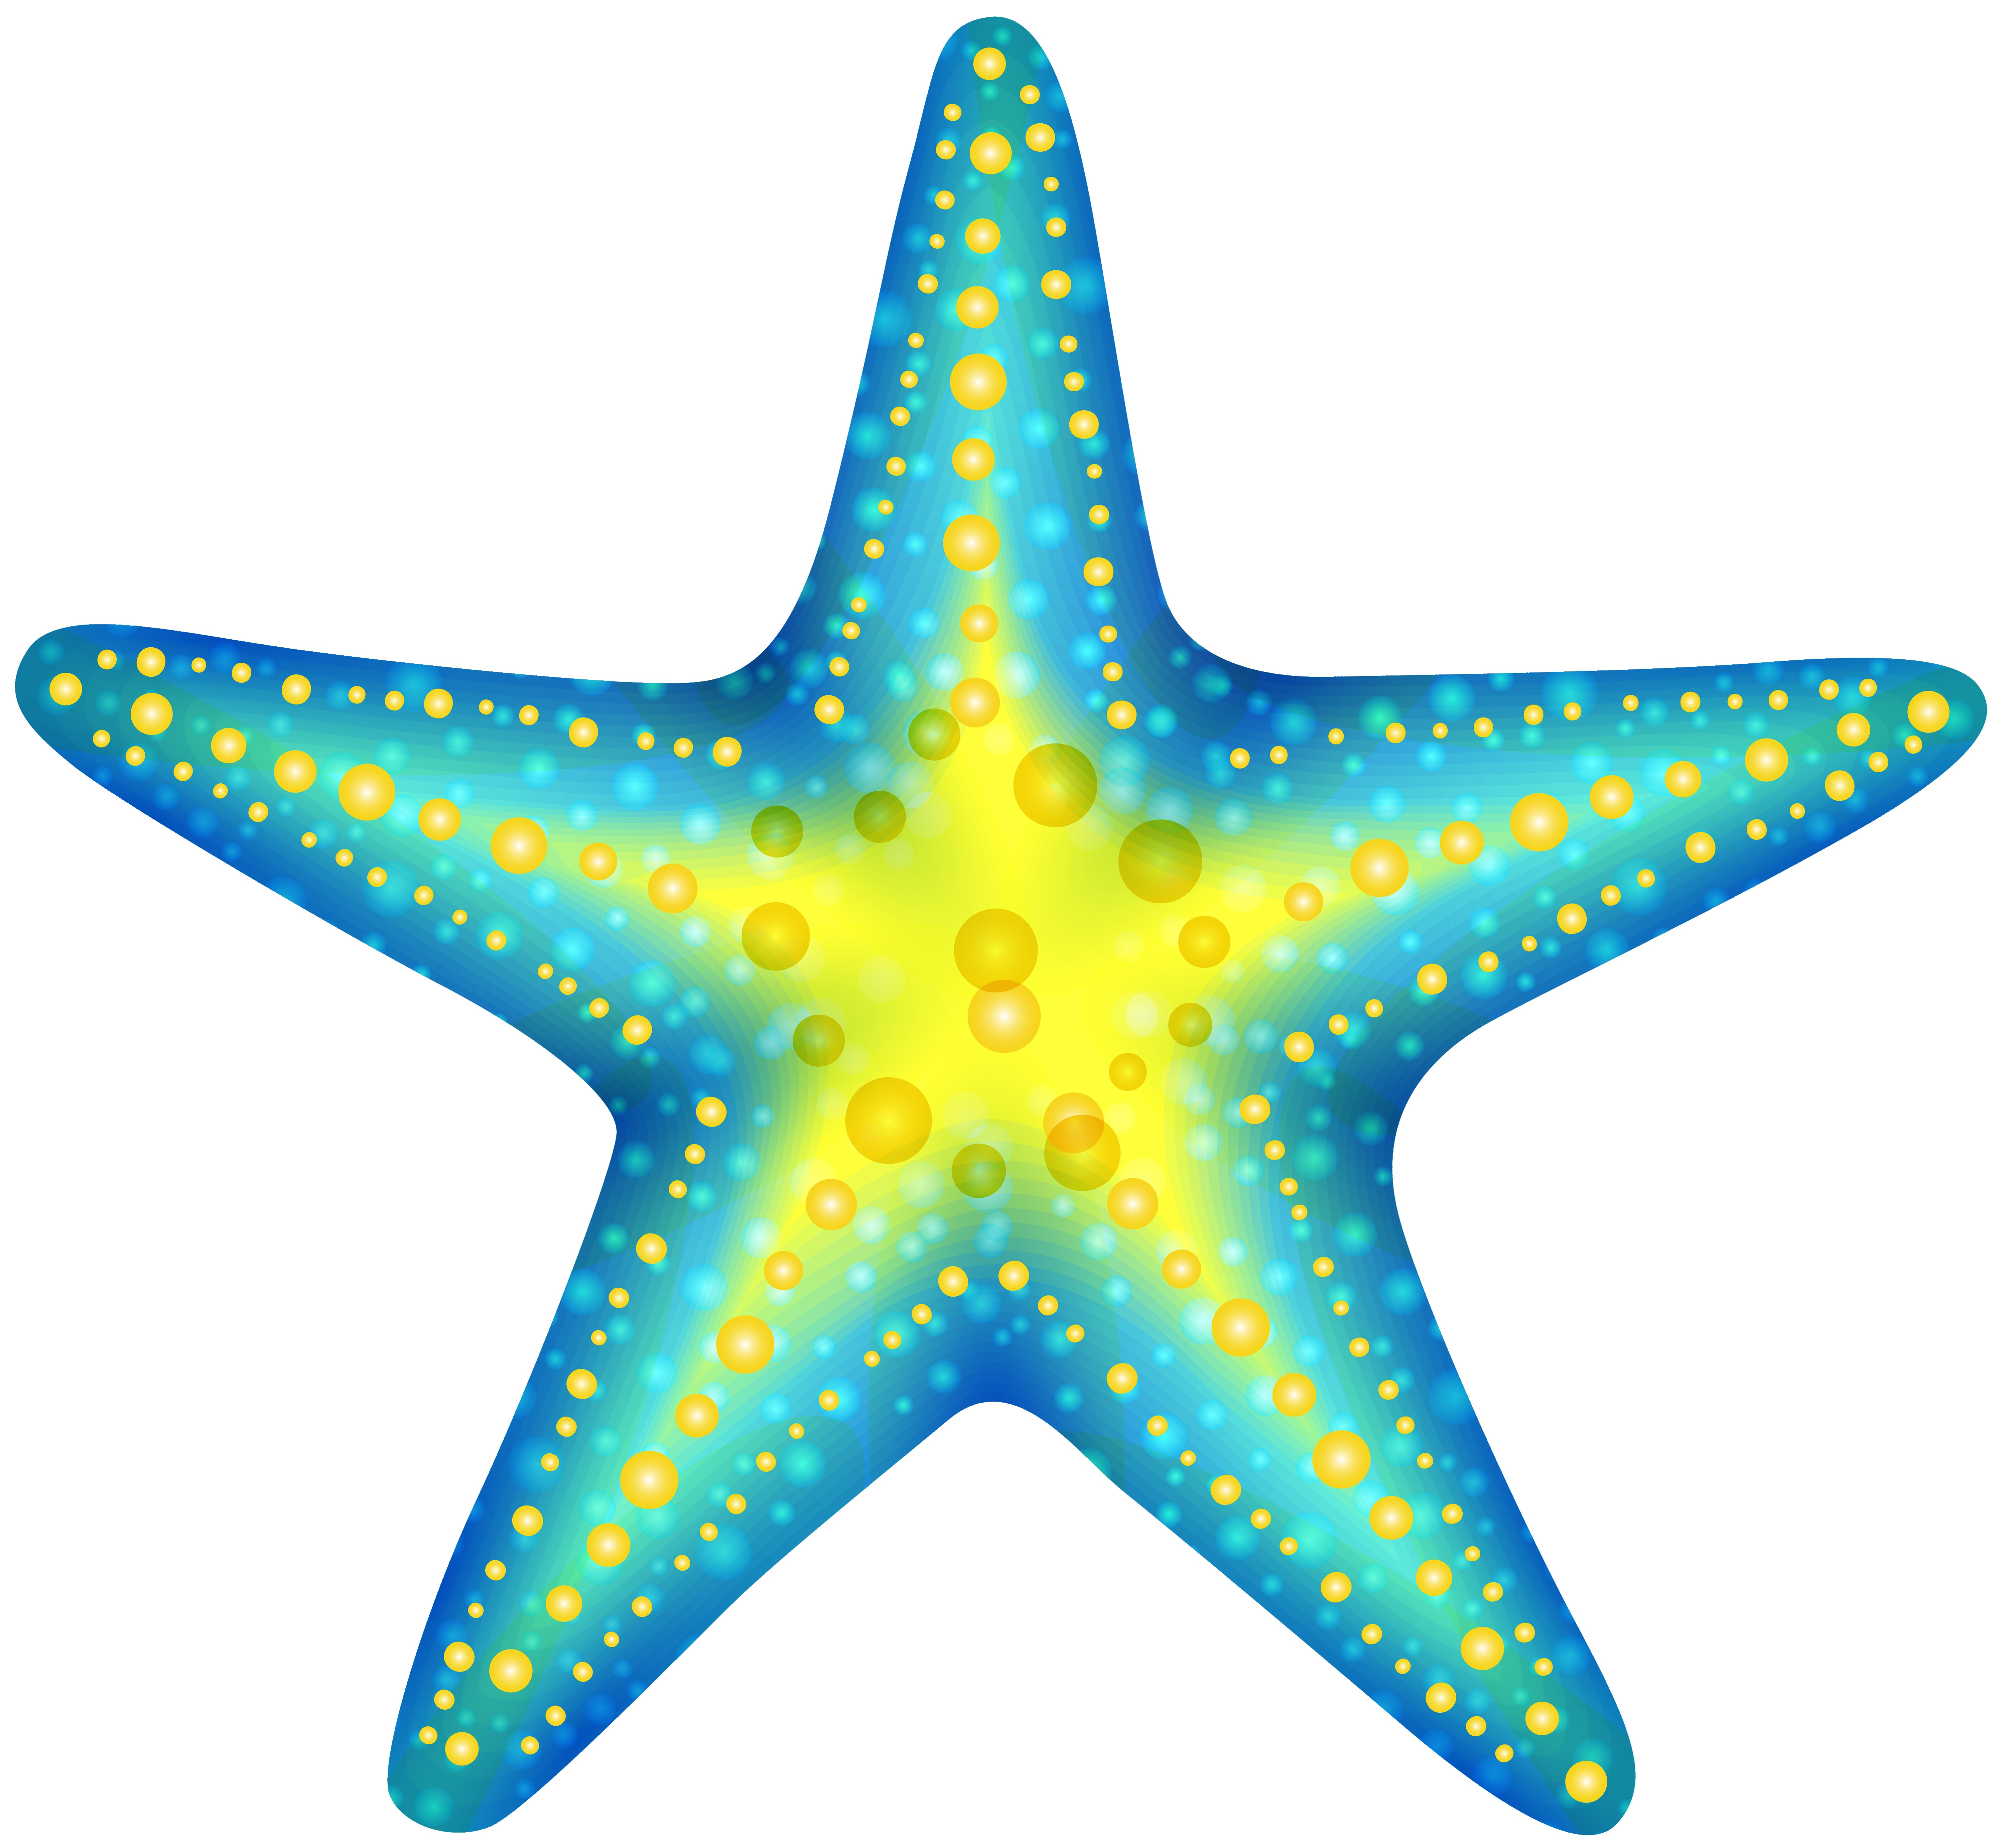 6000x5530 Starfish Transparent Png Clip Art Image Gallery Yopriceville